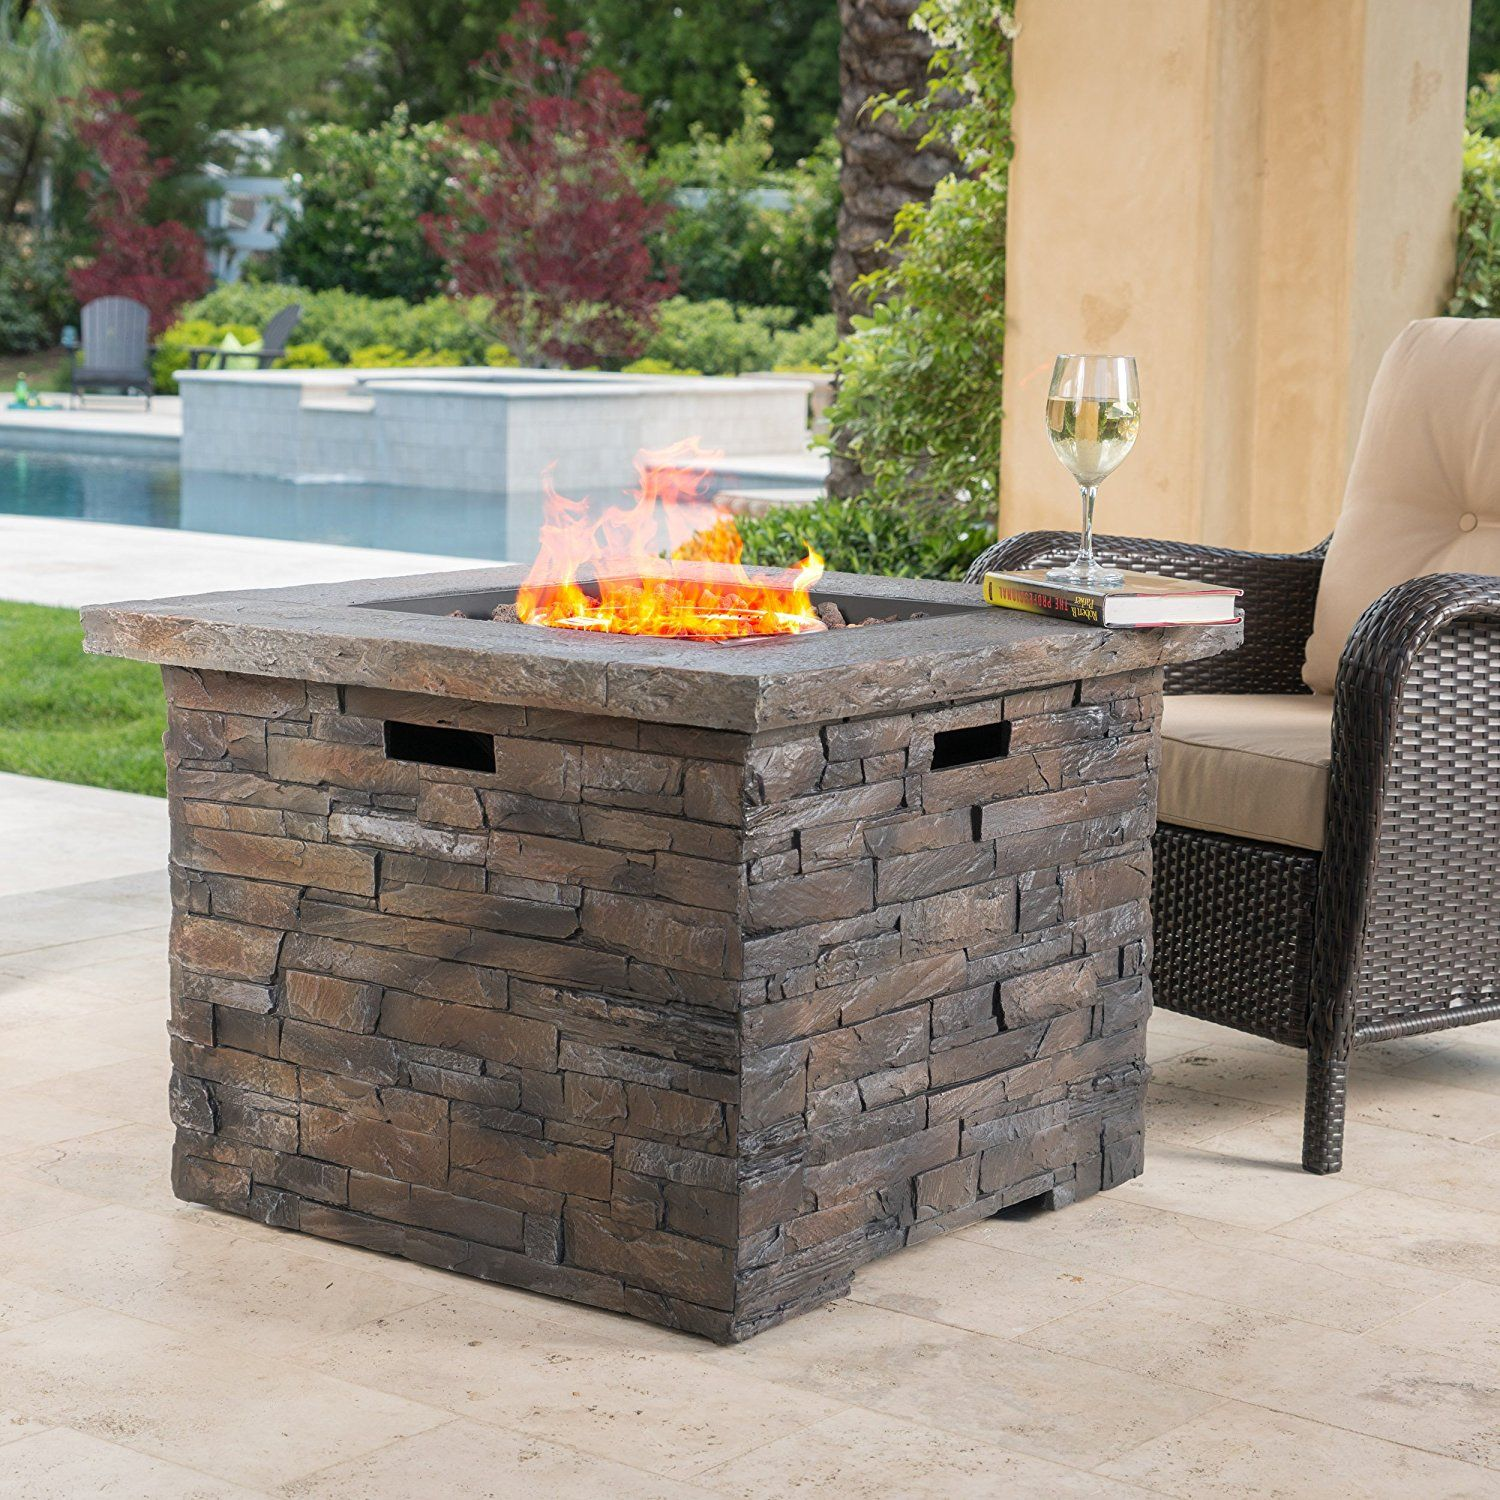 Top 10 Best Outdoor Propane Fire Tables In 2020 Reviews With